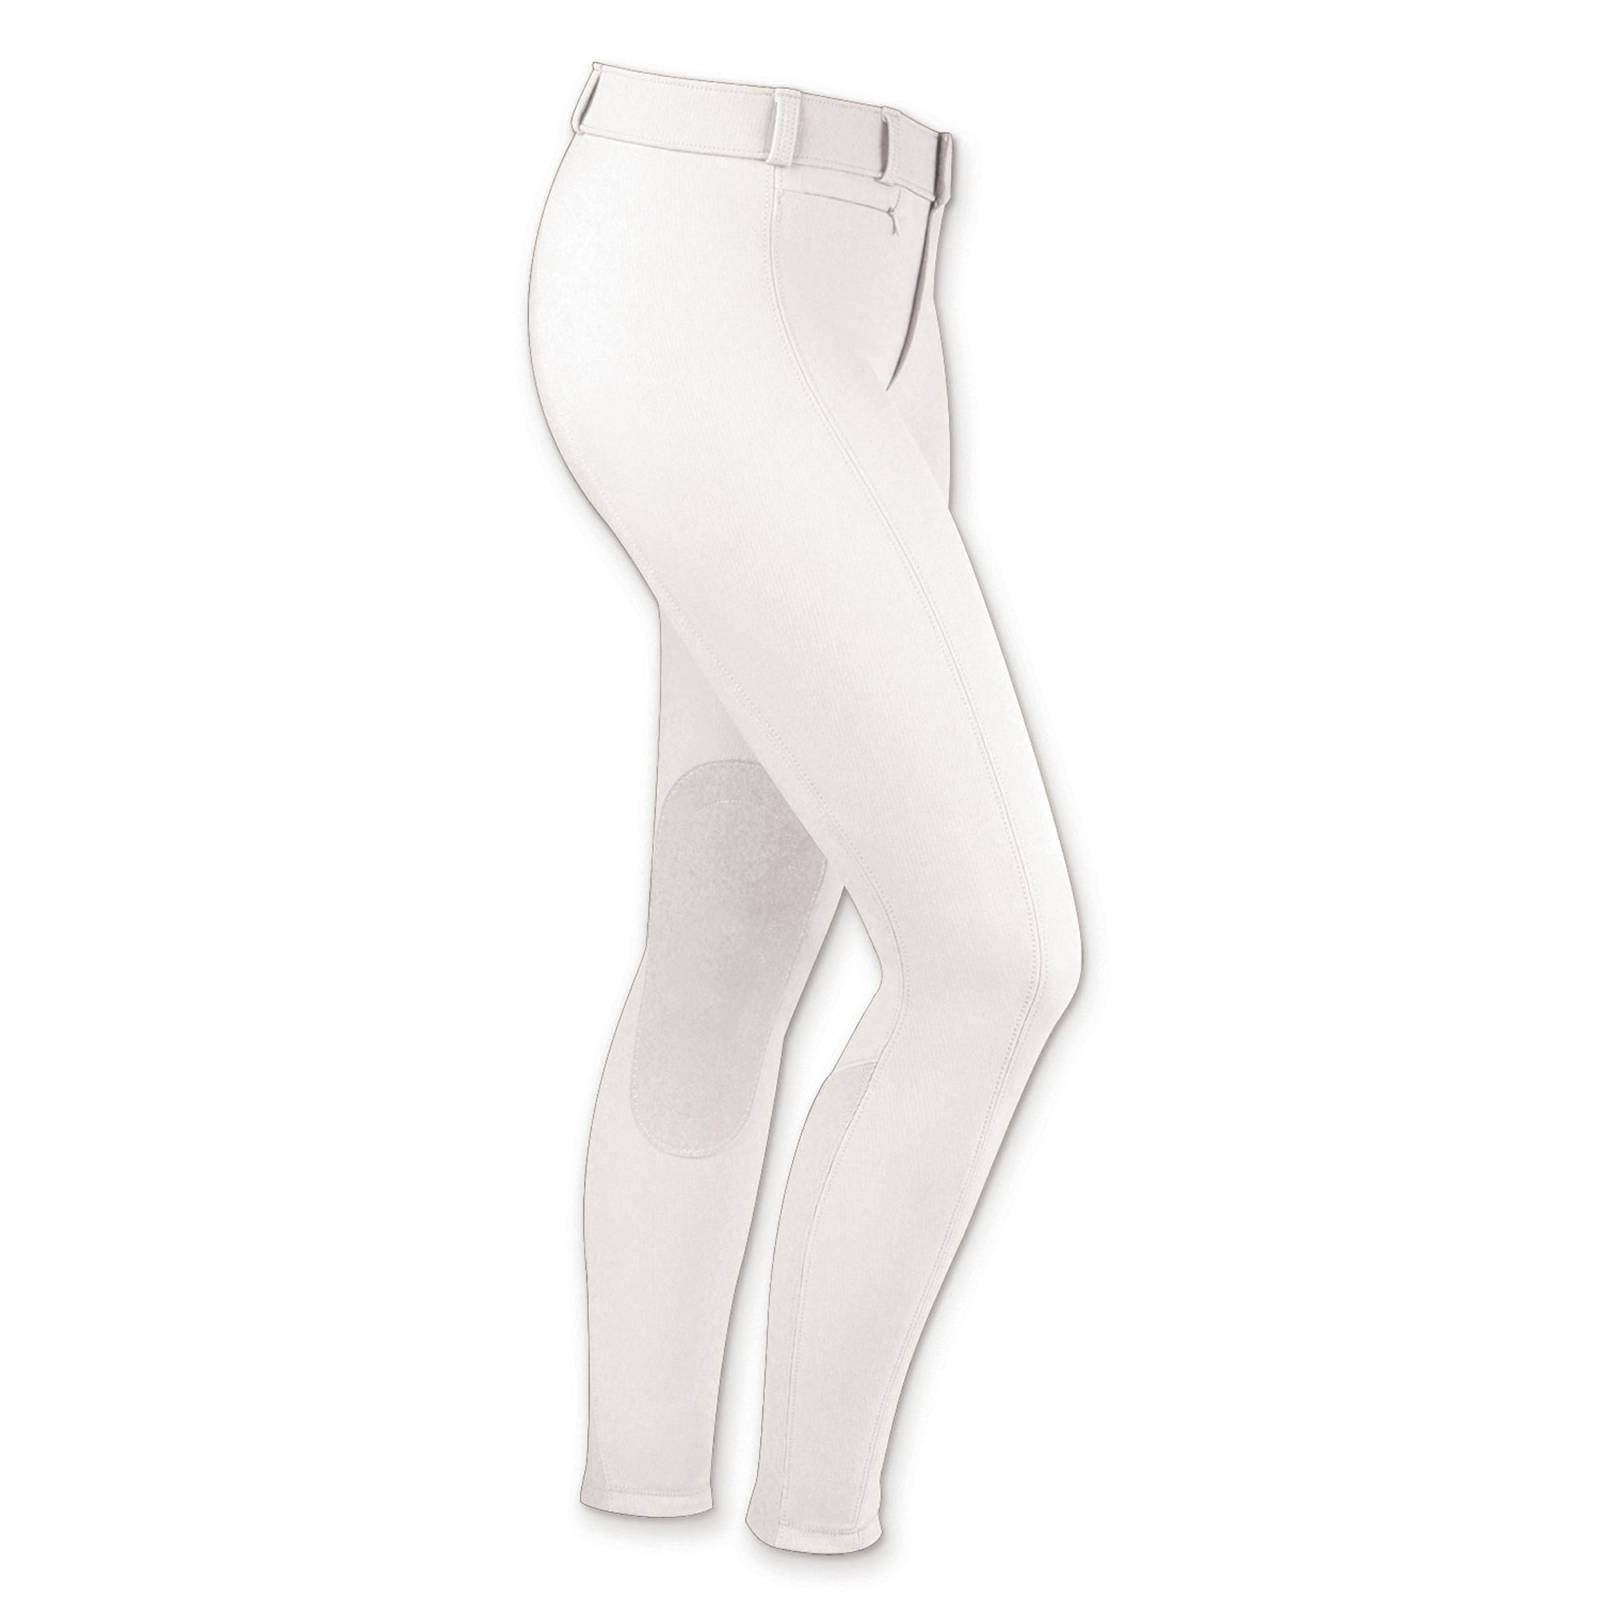 Irideon Ladies' Courdelay Breech